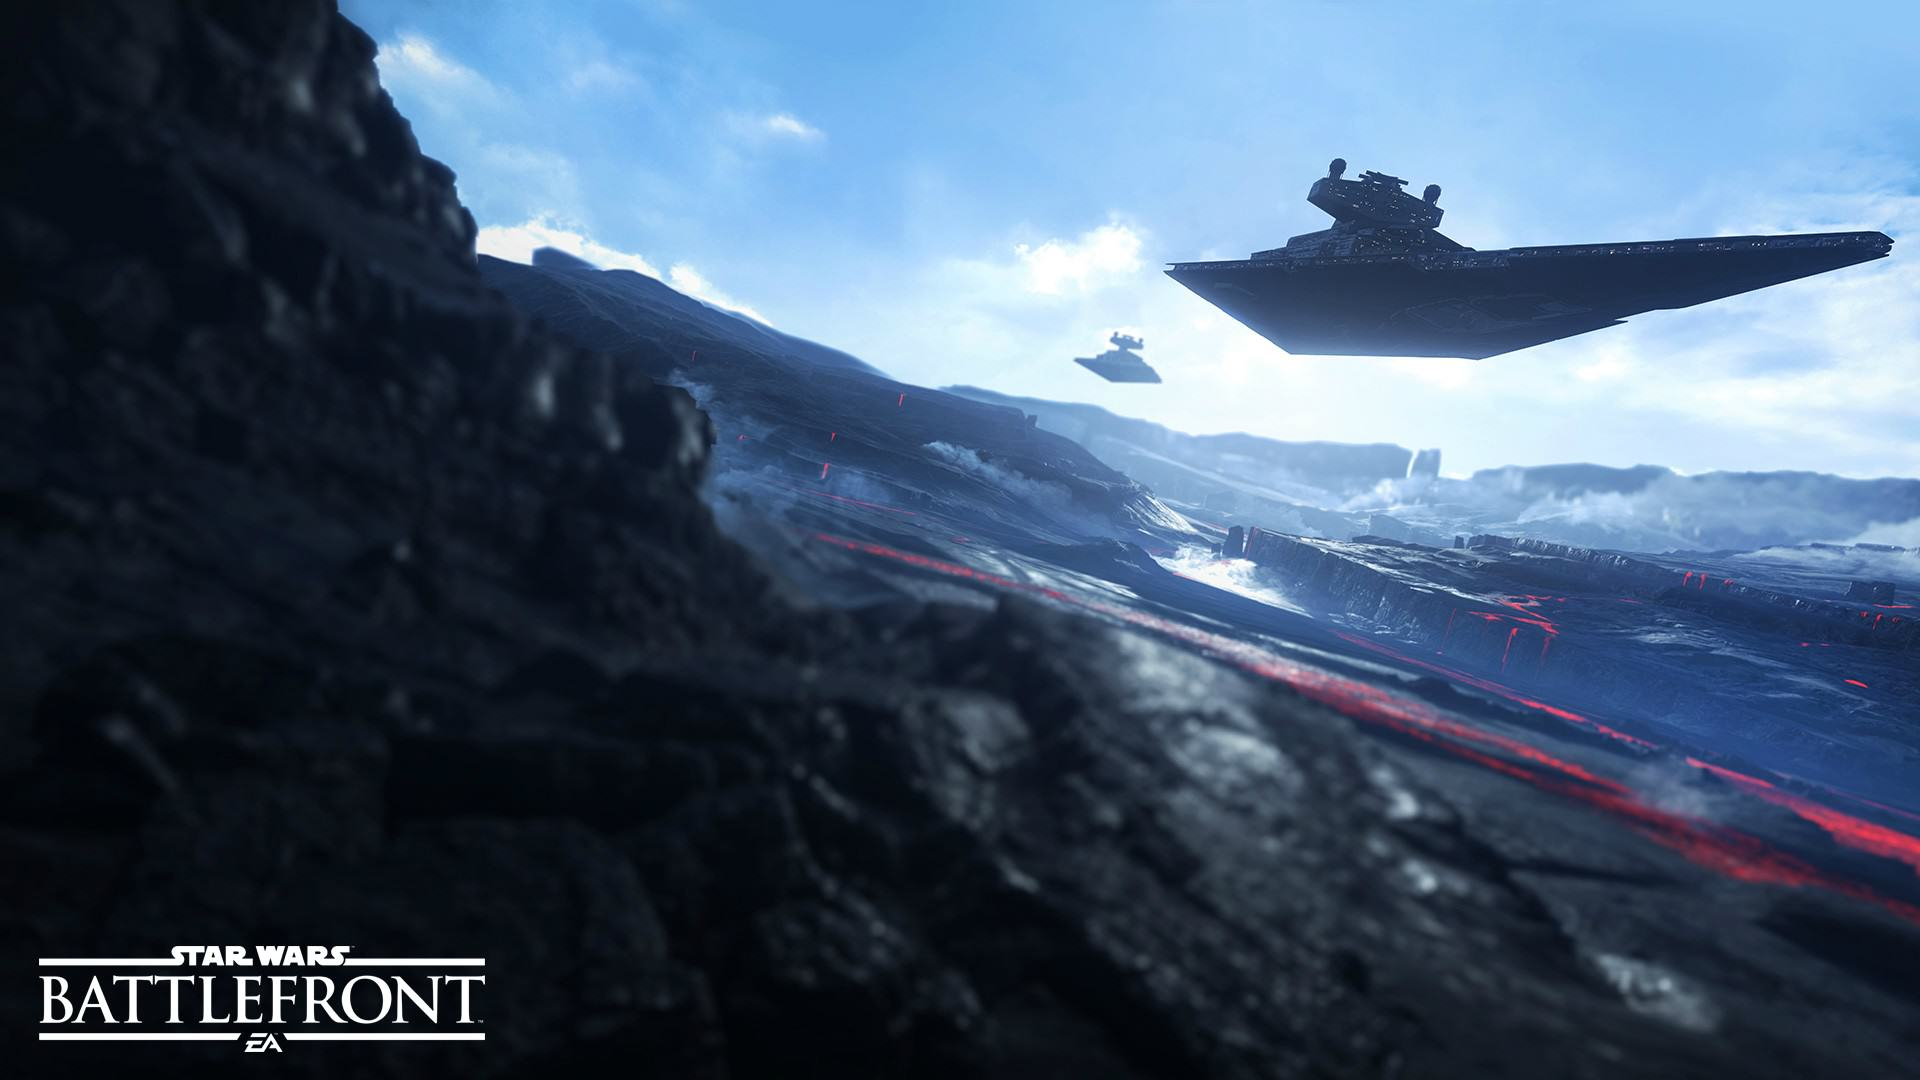 UNILAD 262yb7Z Imgur 14 Star Wars: Battlefront Looks Stunning In These Desktop Backgrounds And Images